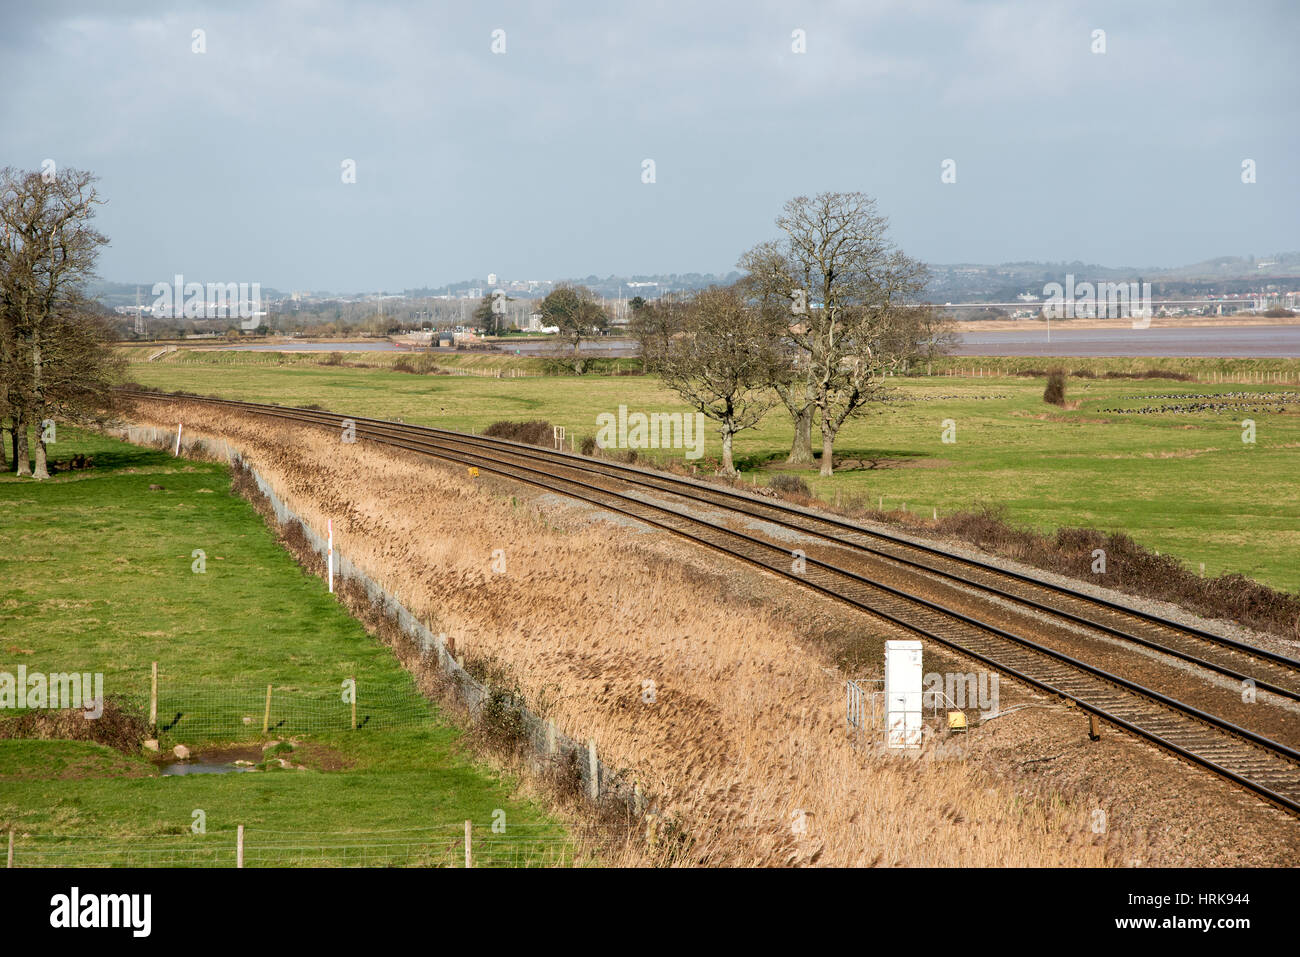 The River Exe at low tide seen from Starcross South Devon England UK With railway tracks heading west through farmland. - Stock Image